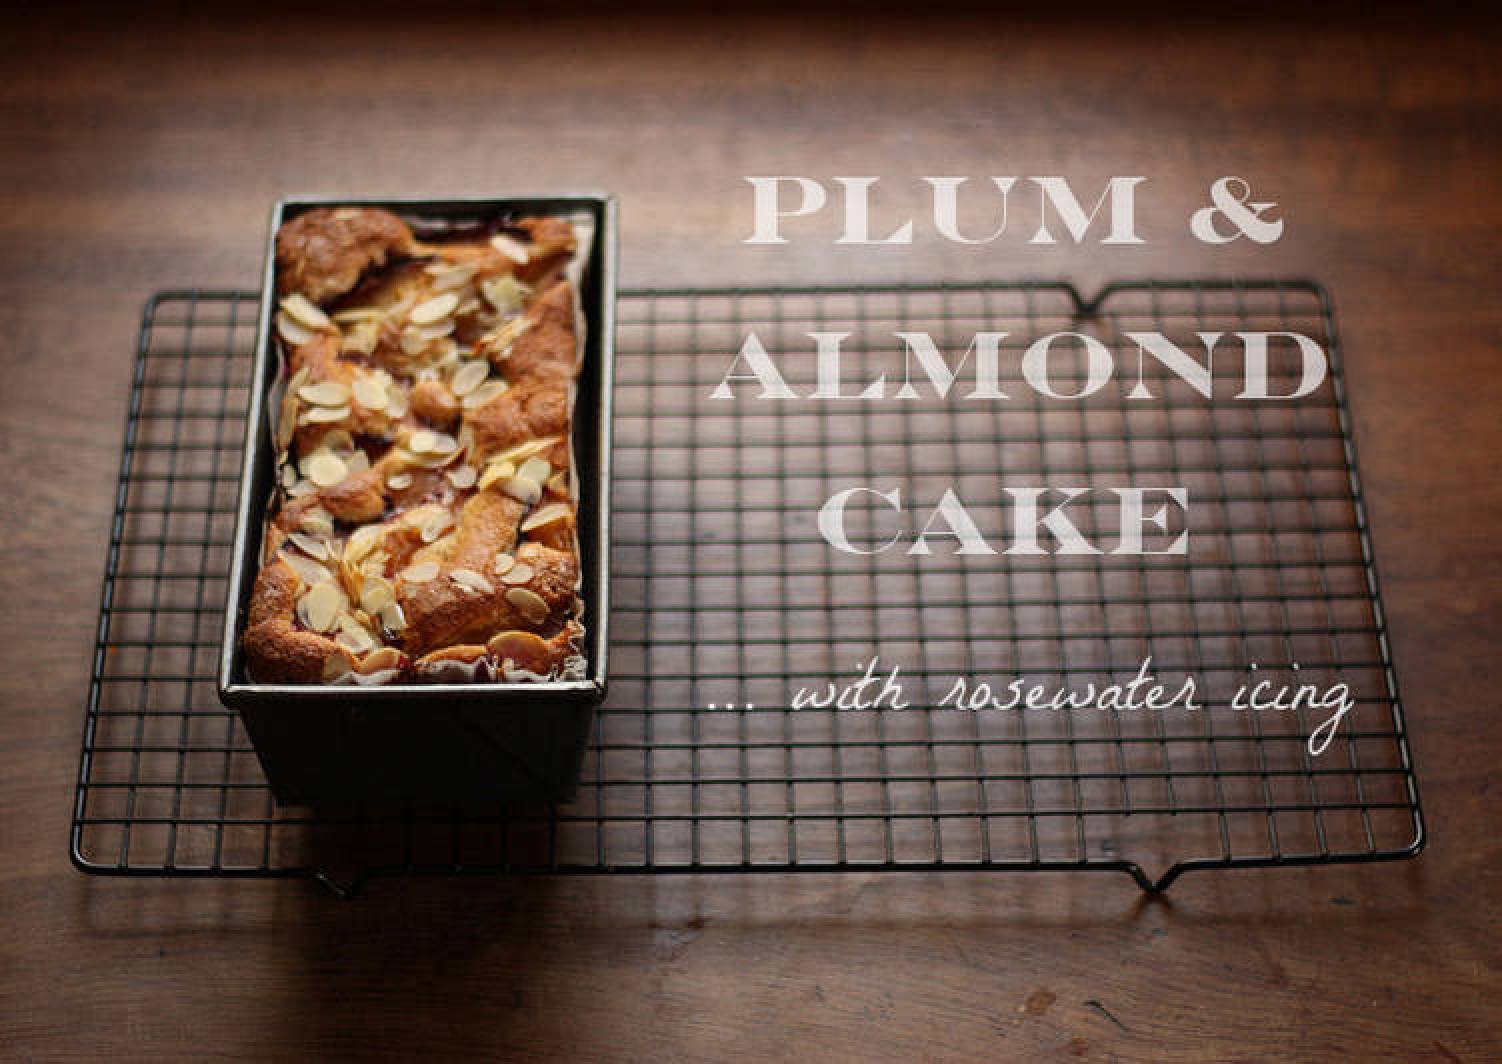 Plum & almond cake with rosewater icing